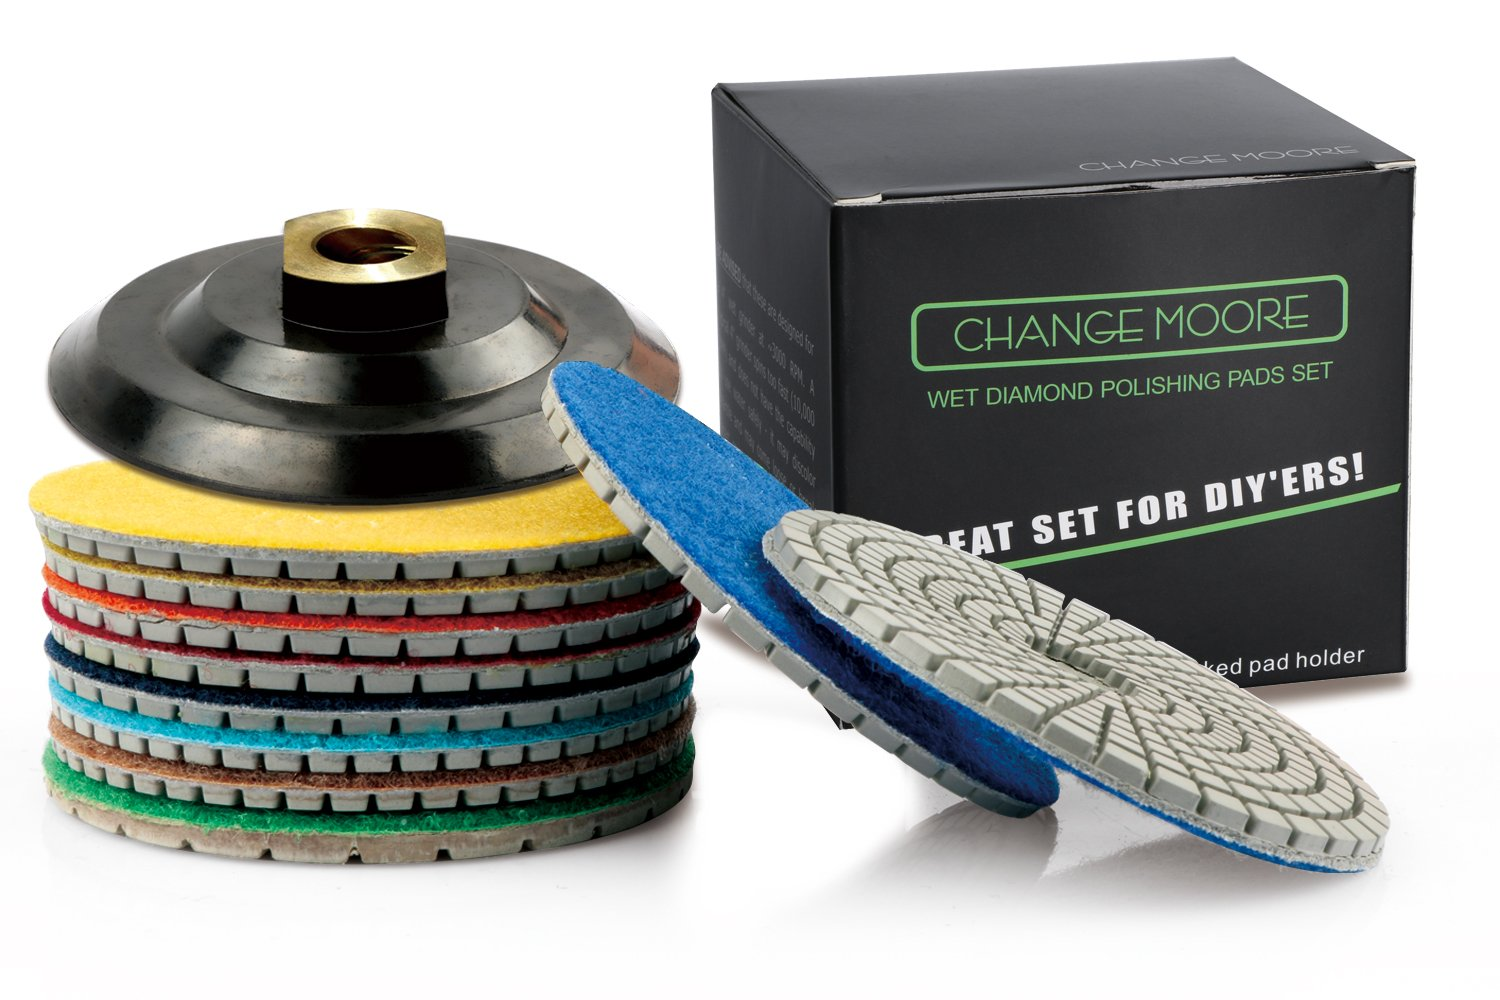 CHANGE MOORE Wet Diamond Polishing Pads Set 4 Inch for Marble Travertine Concrete Quartz Countertop Floor Stone 10 PCS and 1 Velcro Rubber backing pad (5/8'' arbor) by CHANGE MOORE (Image #7)